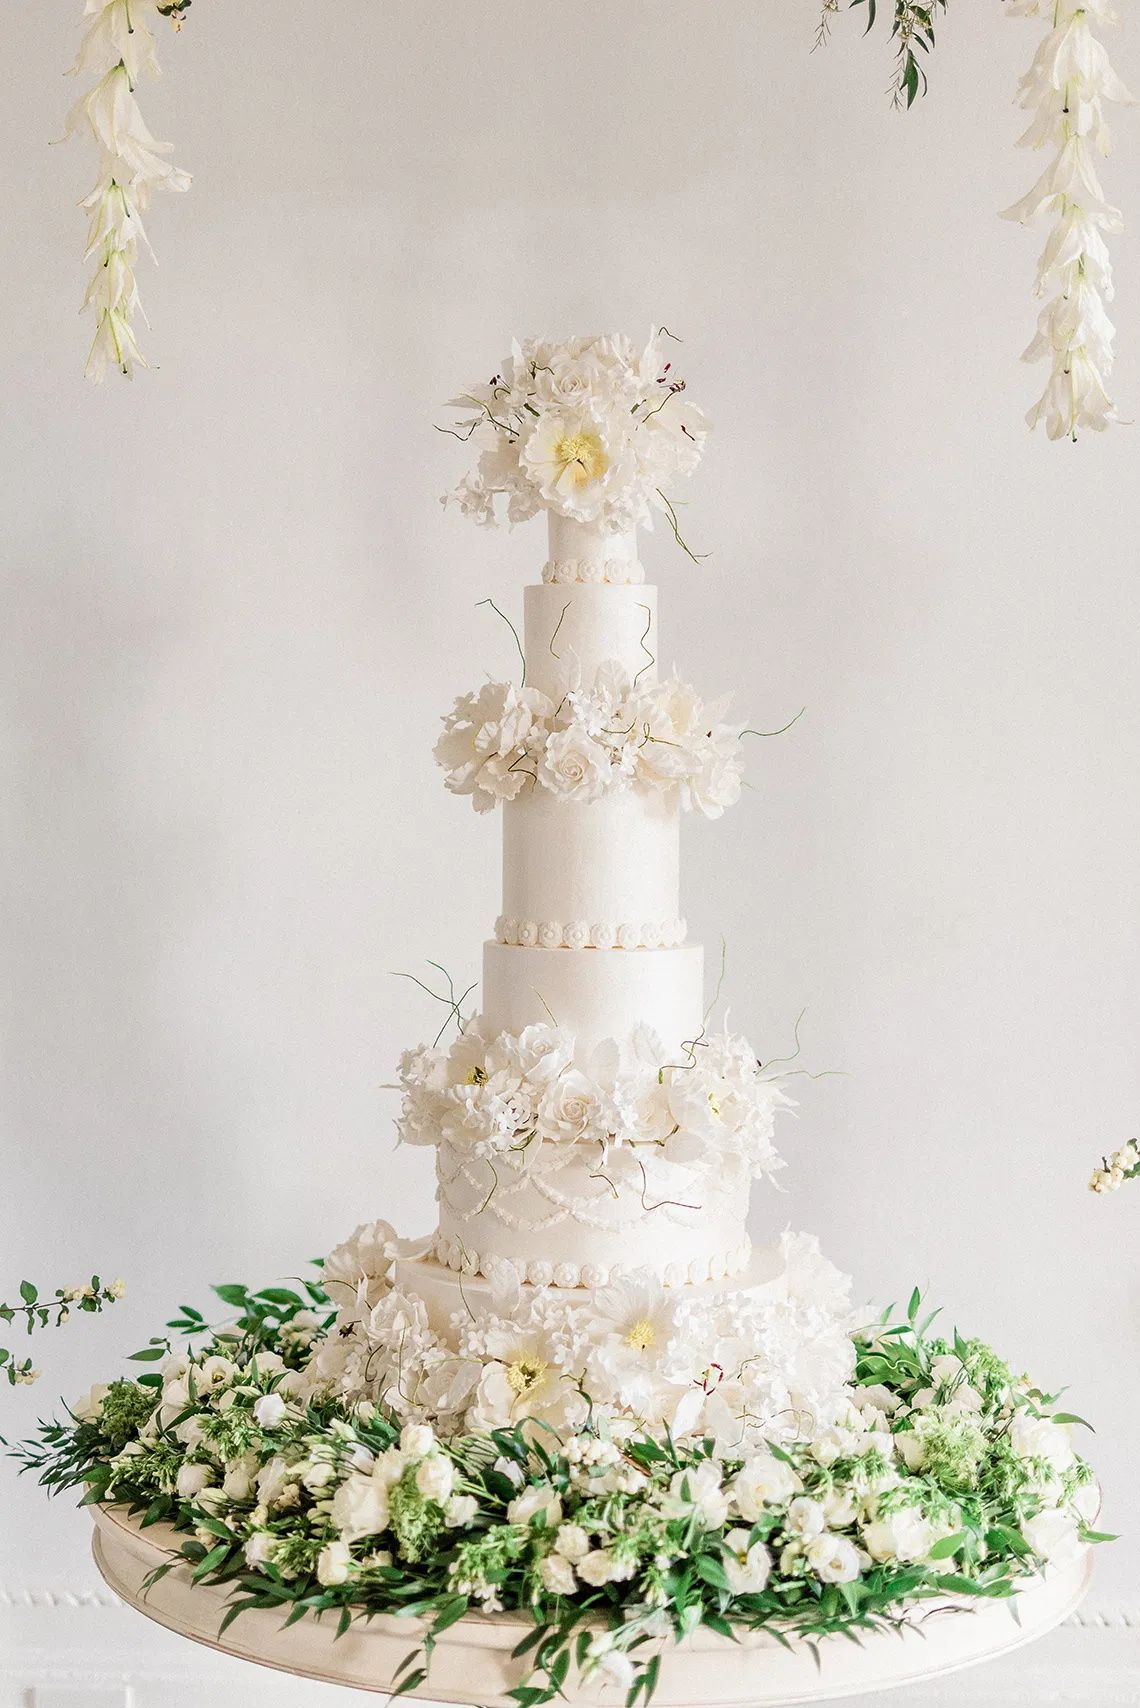 10 Tips For Making Your Own Wedding Cake In 2020 Wedding Cake Centerpieces Pretty Wedding Cakes Wedding Cake Options